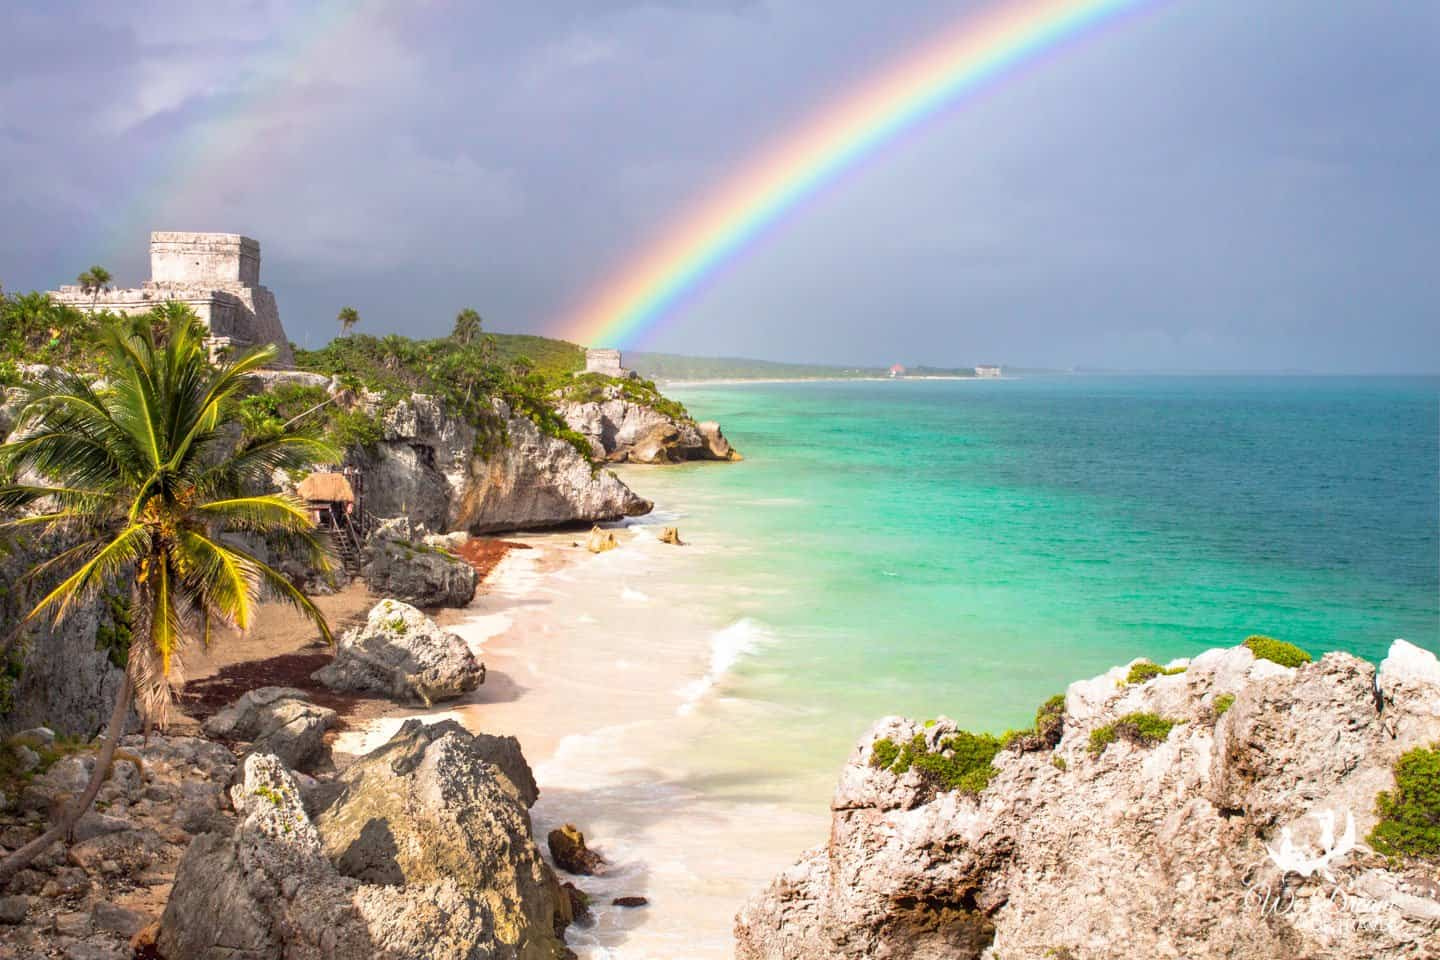 The old Tulum ruins are graced with a vibrant rainbow and nothing but paradise surrounding.